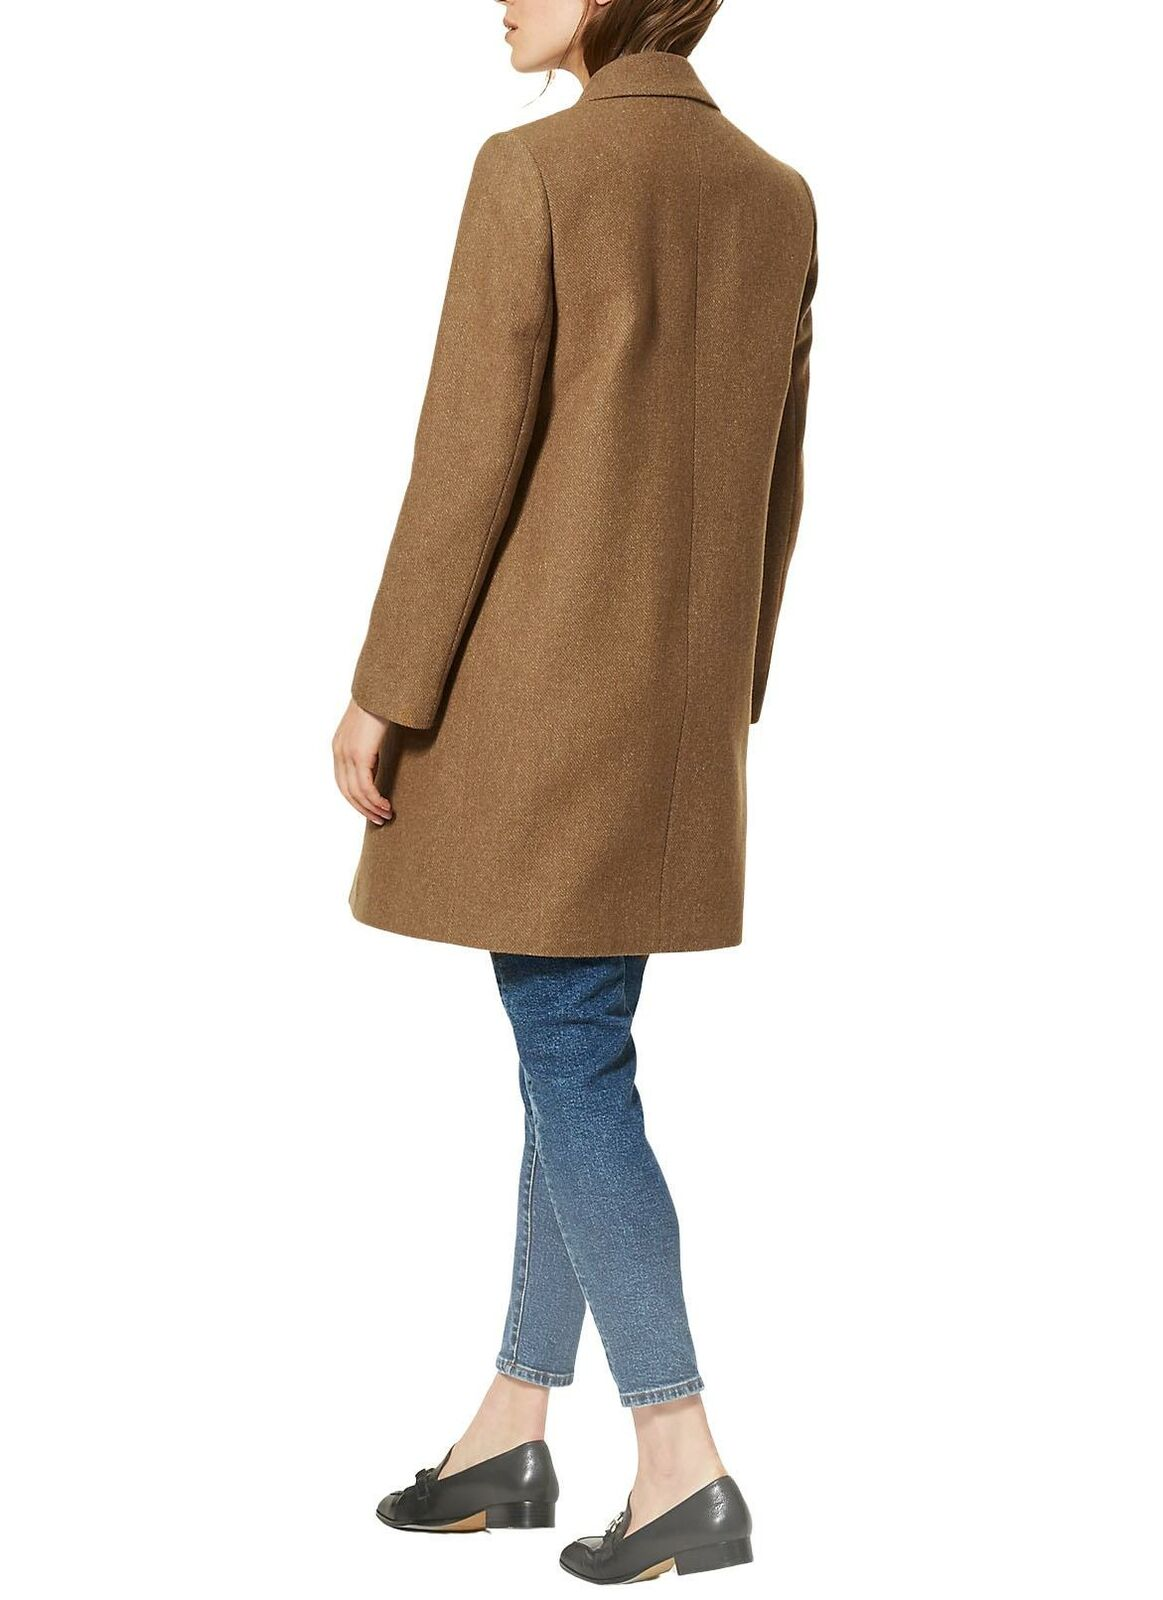 M-amp-S-Wool-Blend-Single-Breasted-Pink-Brown-Winter-Coat-Holly-Willoughby-Size-6-24 thumbnail 14